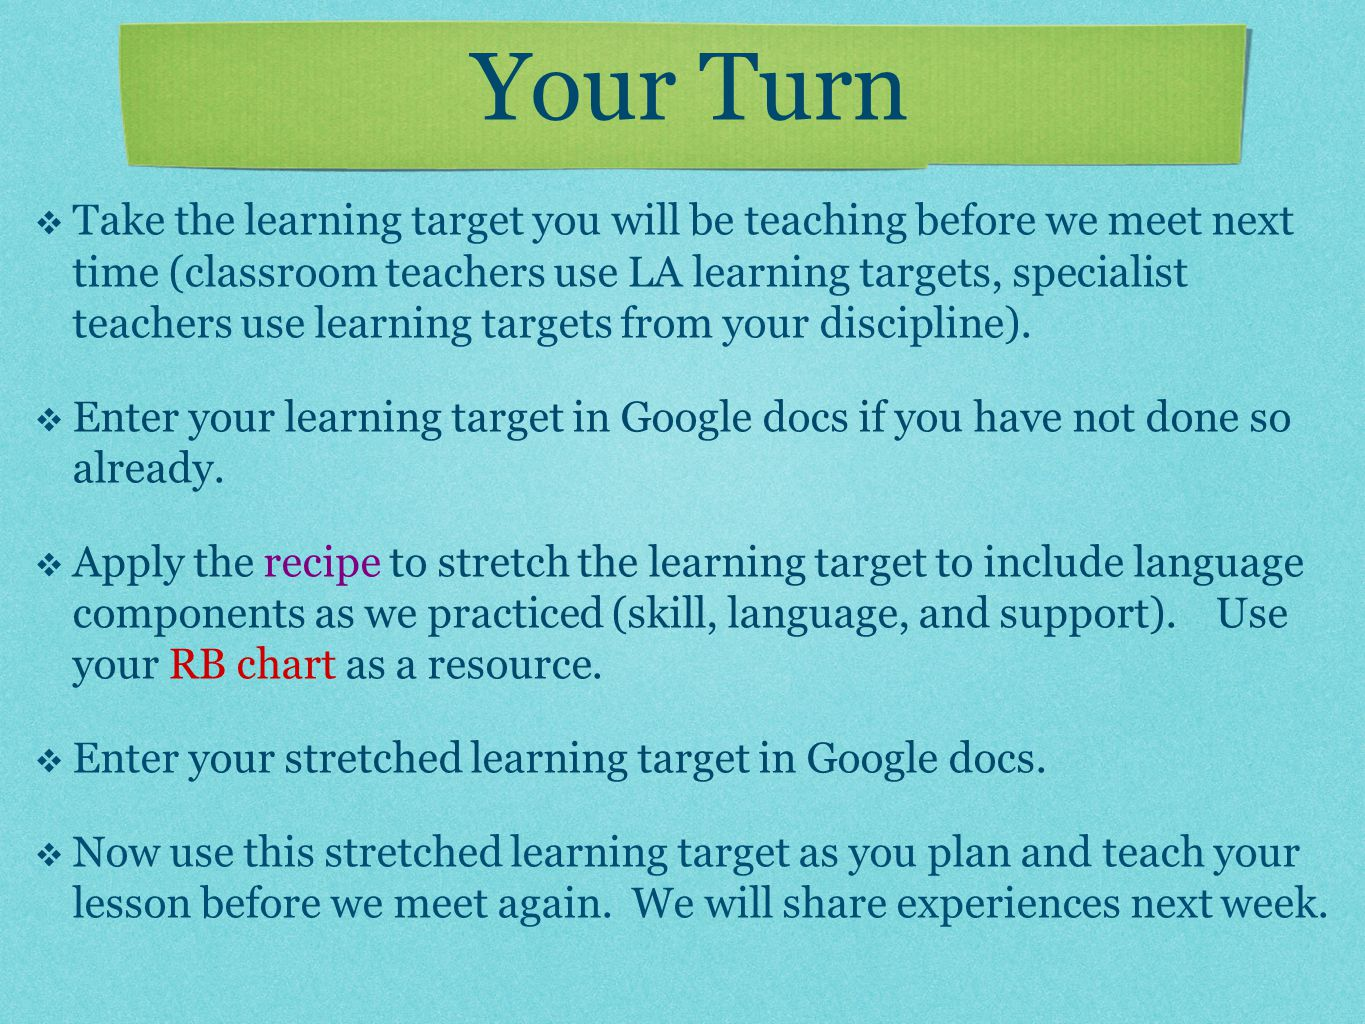 Your Turn  Take the learning target you will be teaching before we meet next time (classroom teachers use LA learning targets, specialist teachers use learning targets from your discipline).